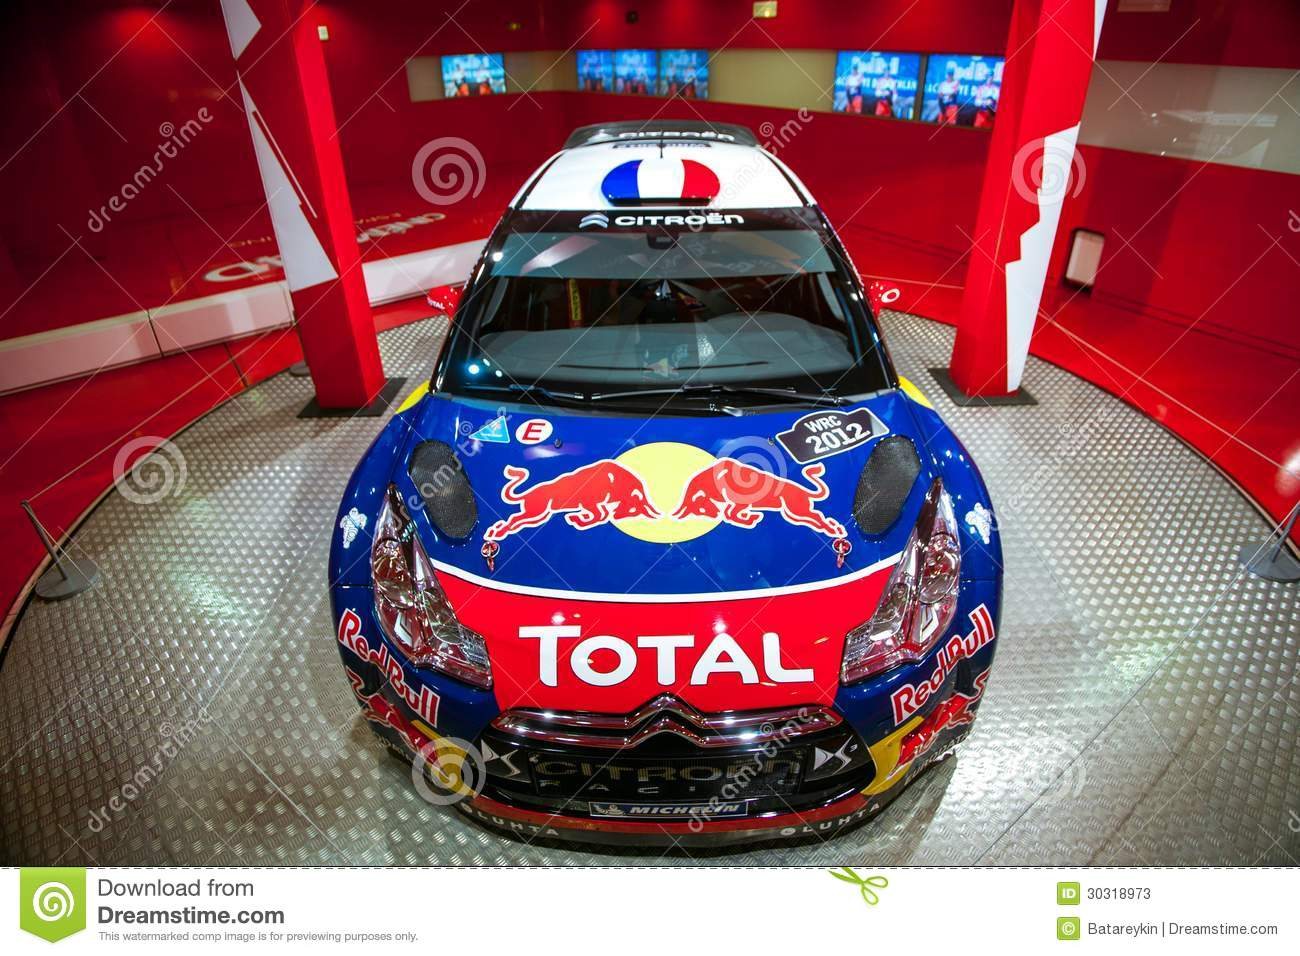 Voiture de course sebastien loeb photo stock ditorial image 30318973 - Voiture sebastien loeb ...